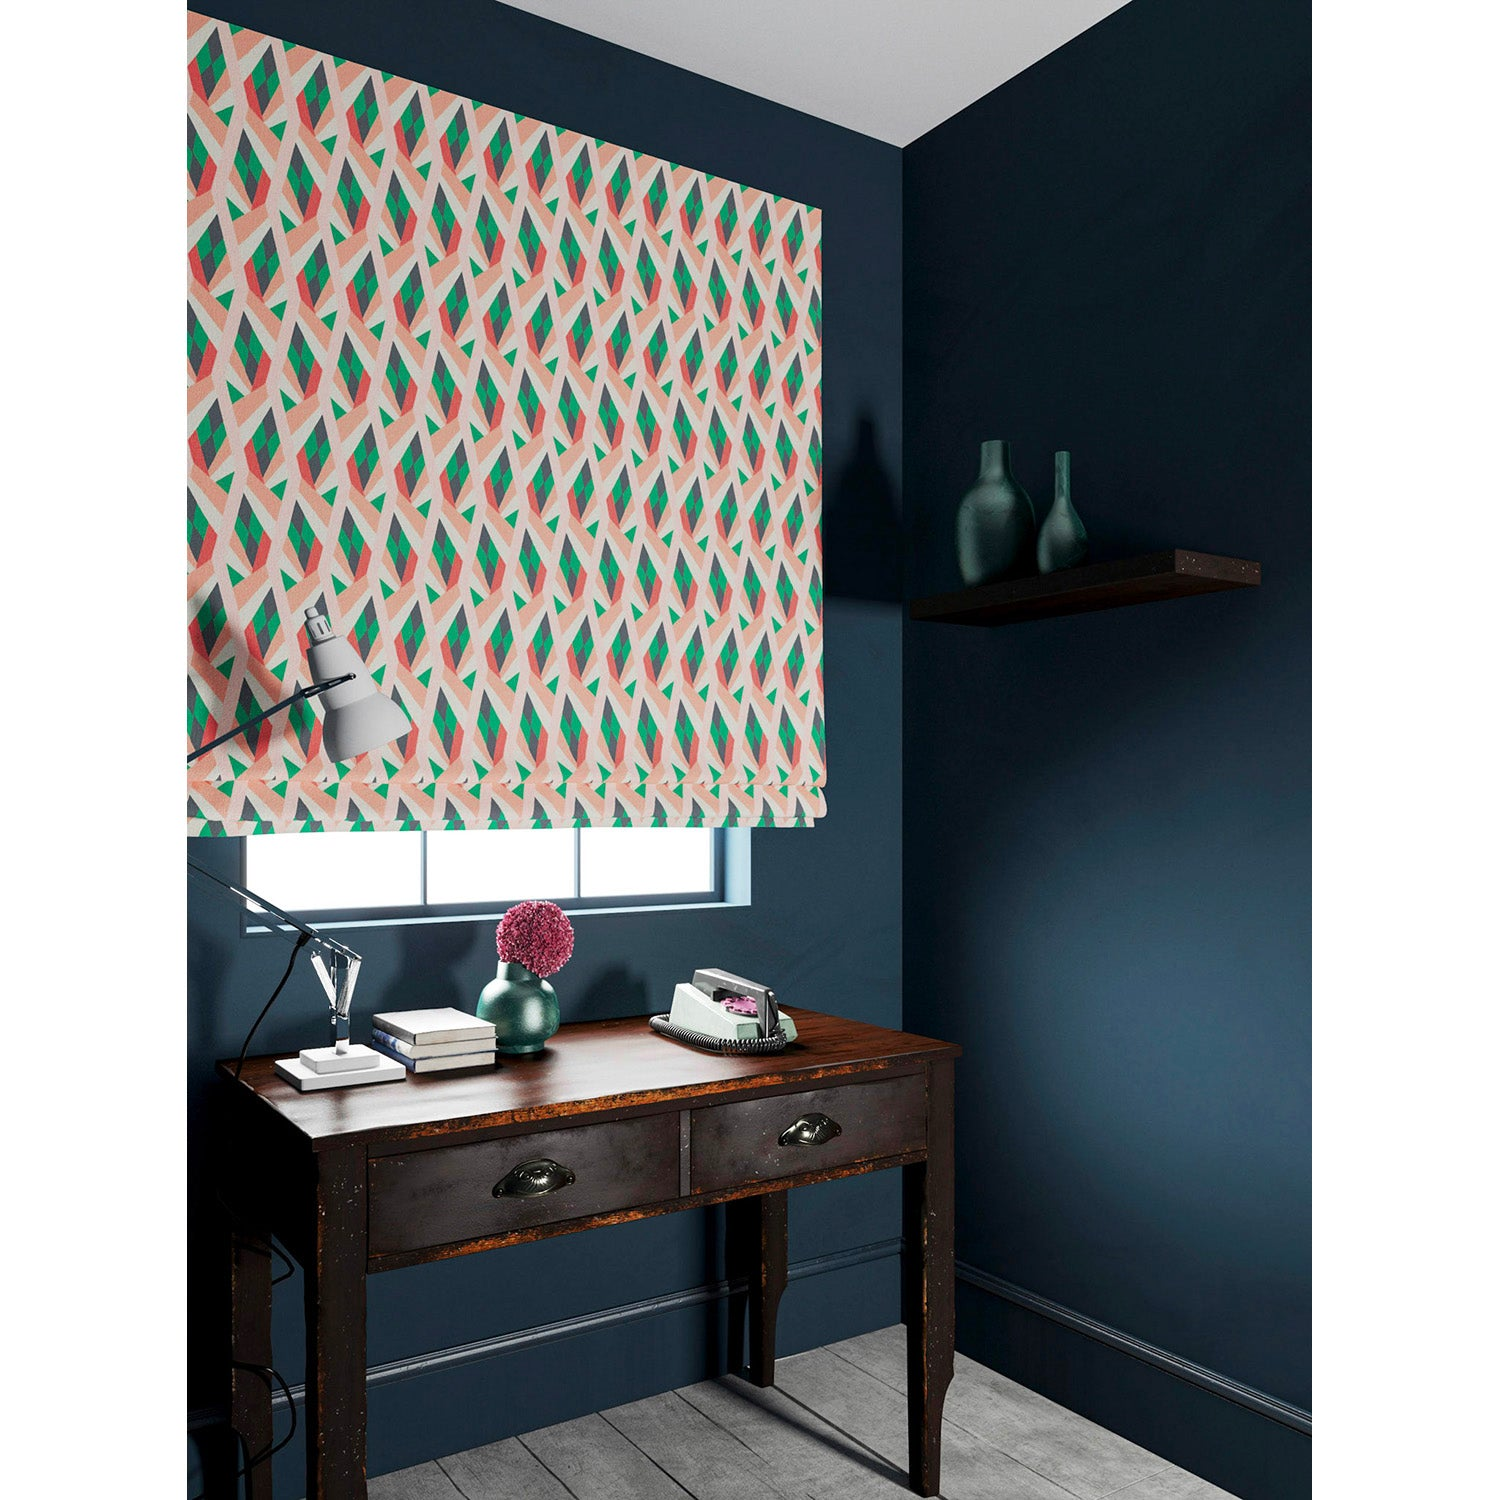 Blind in a velvet fabric with stain resistant finish and geometric print in peach and green colours